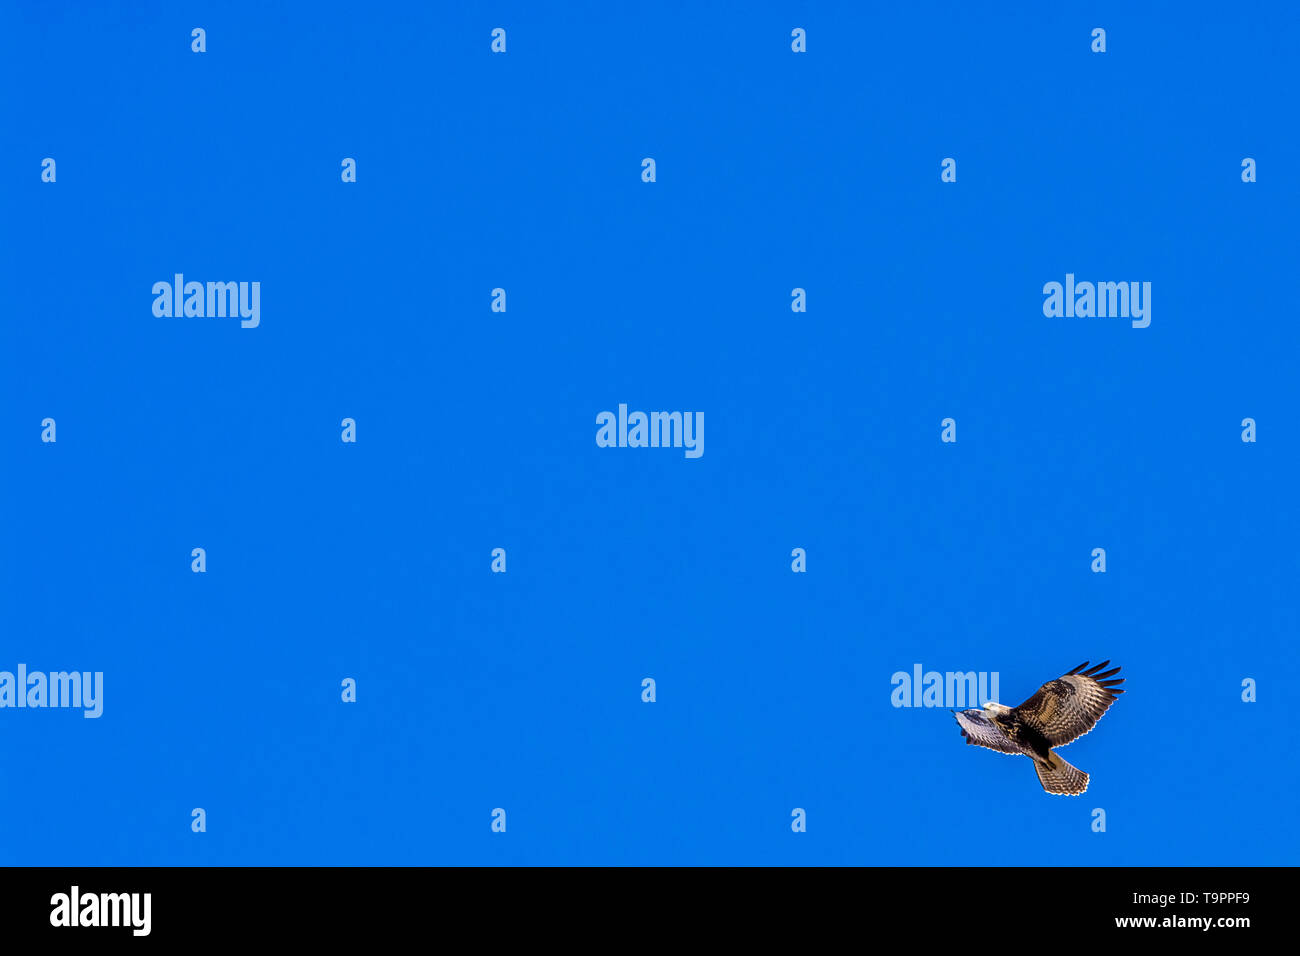 Blue background with lots of open space and a buzzard - Stock Image